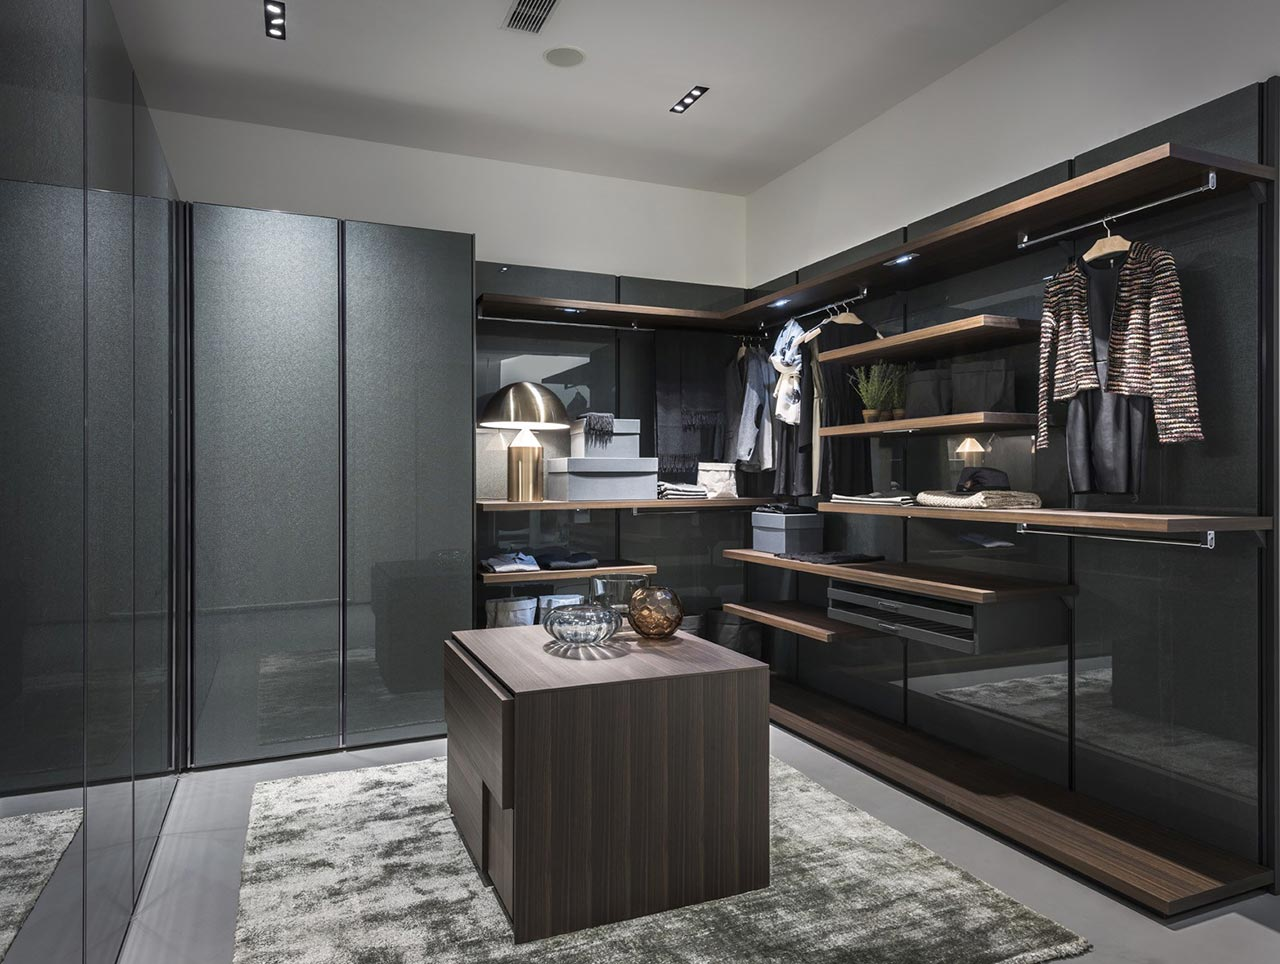 Showroom Macsk Singapore